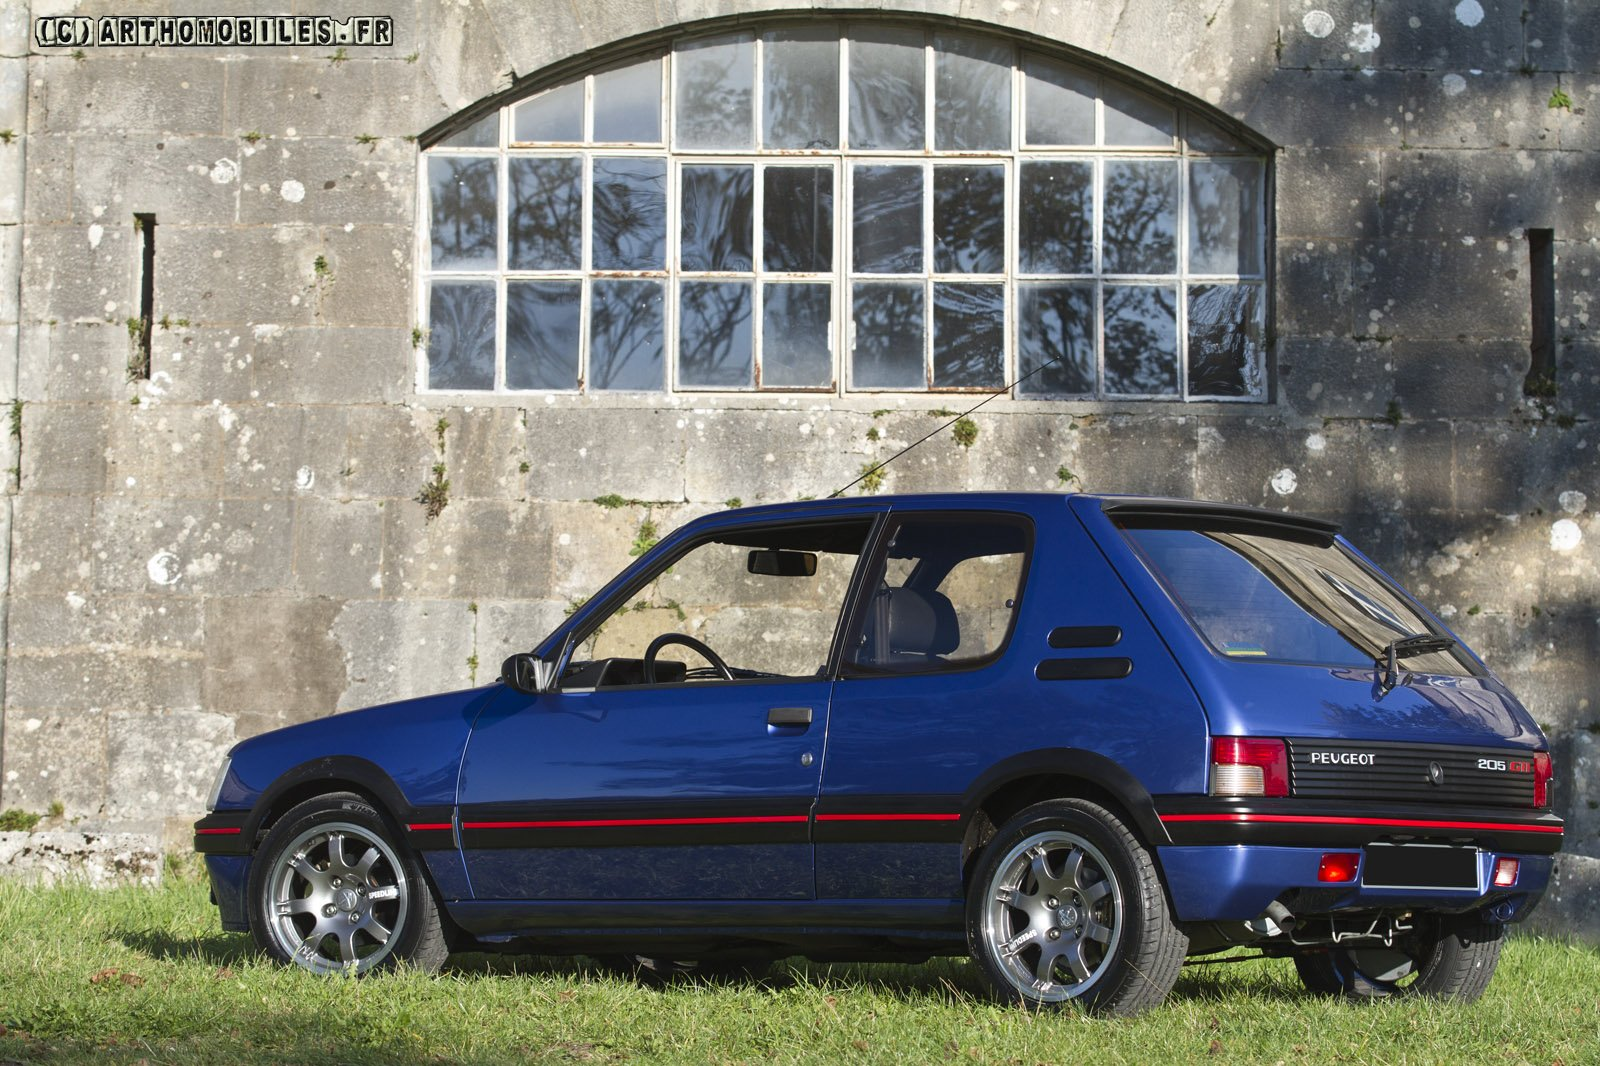 peugeot 205 gti cars coupe french bleu blue wallpaper 1600x1066 562484 wallpaperup. Black Bedroom Furniture Sets. Home Design Ideas